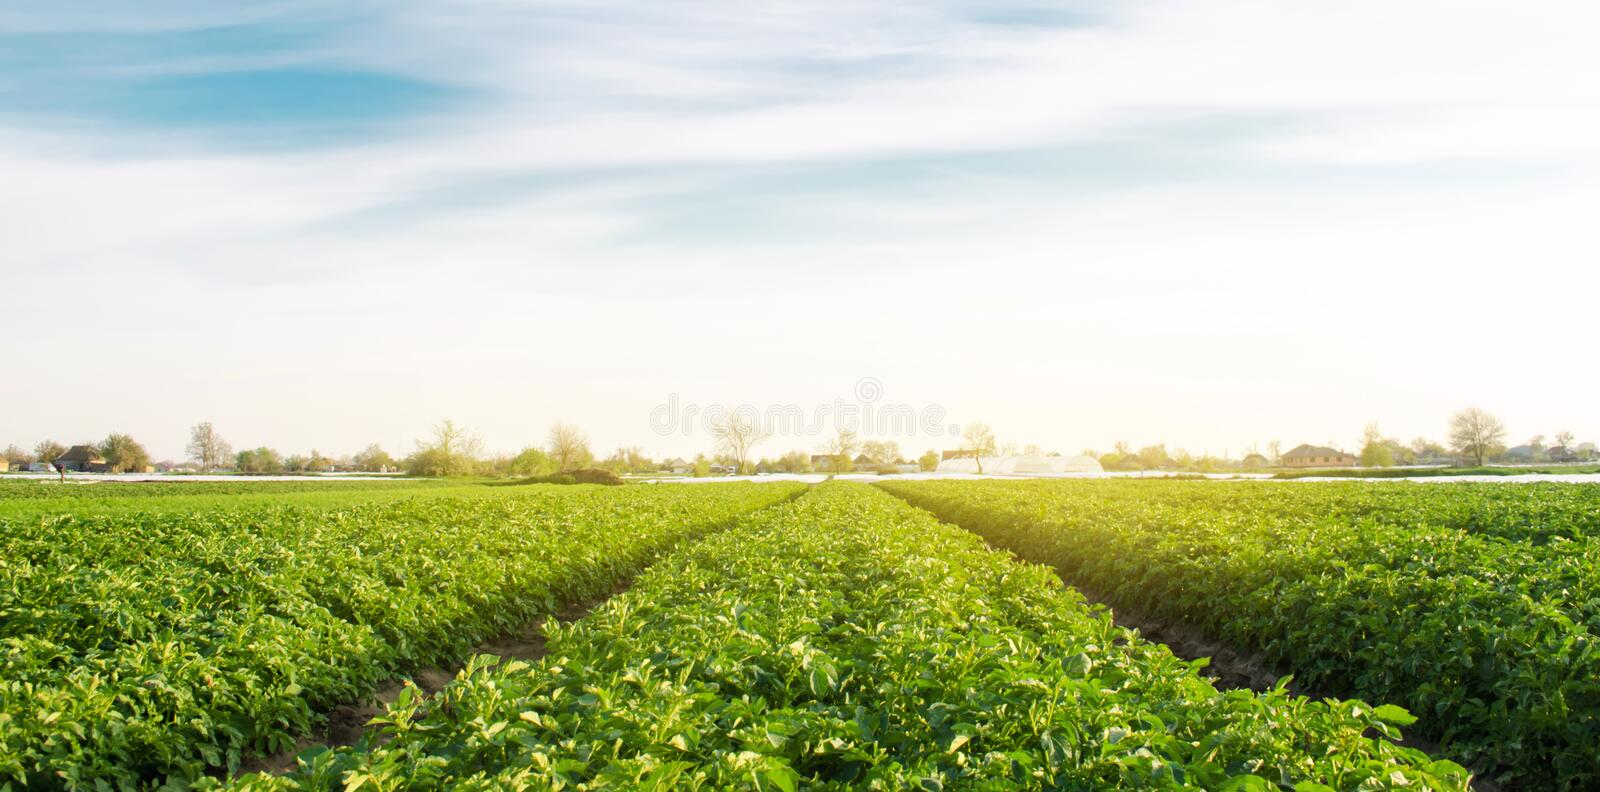 Potato plantation grow in the field. Vegetable rows. Farming, agriculture. Landscape with agricultural land. Fresh Organic royalty free stock photography